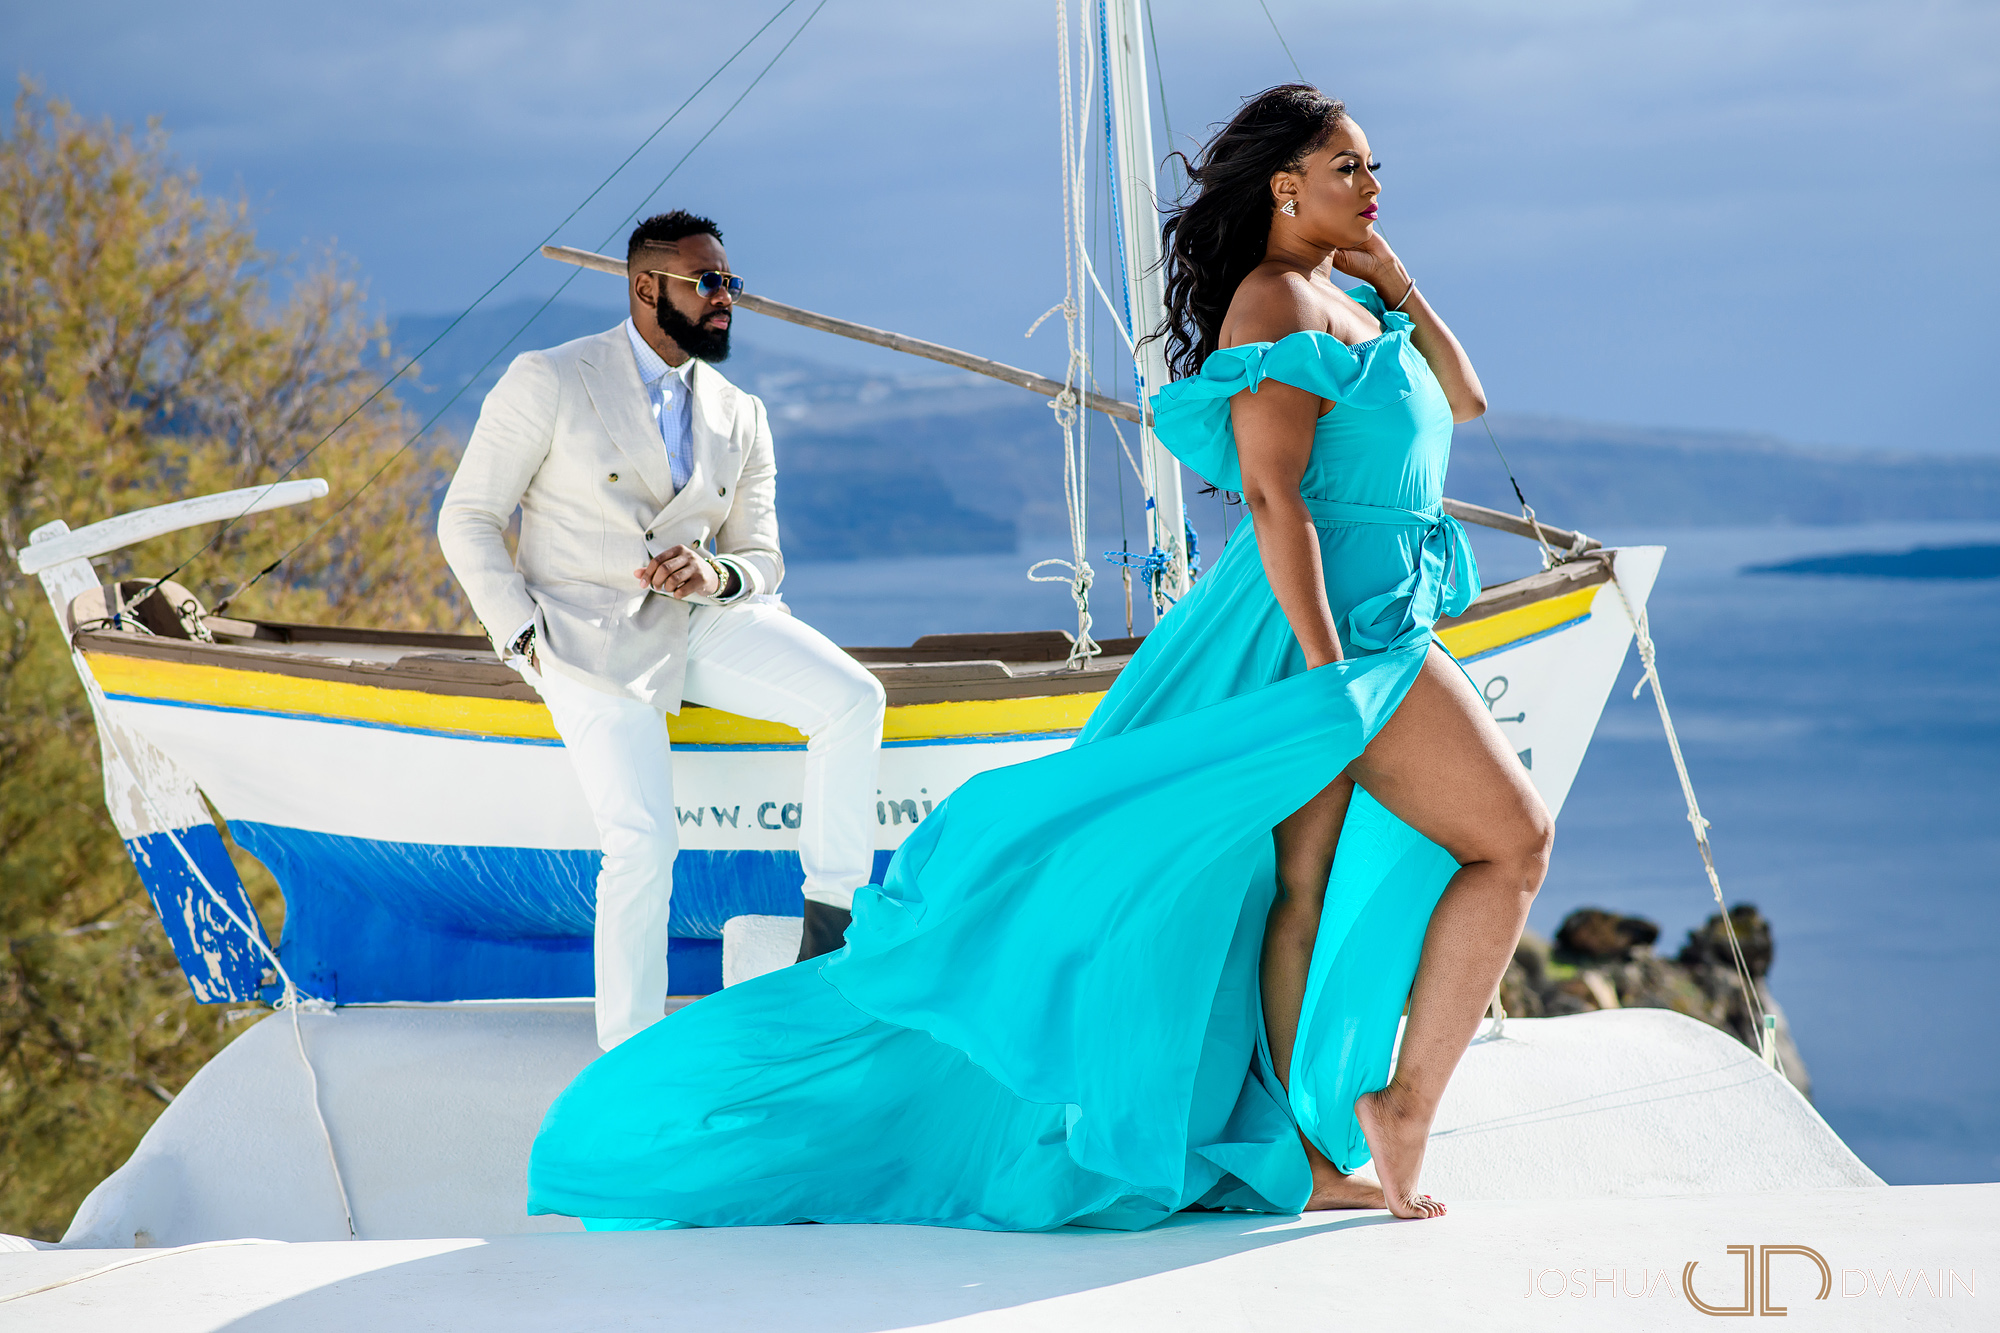 ekene-issac-03-santorini-oia-thira-greece-wedding-engagement-photos-african-american-destination-photographer-joshua-dwain